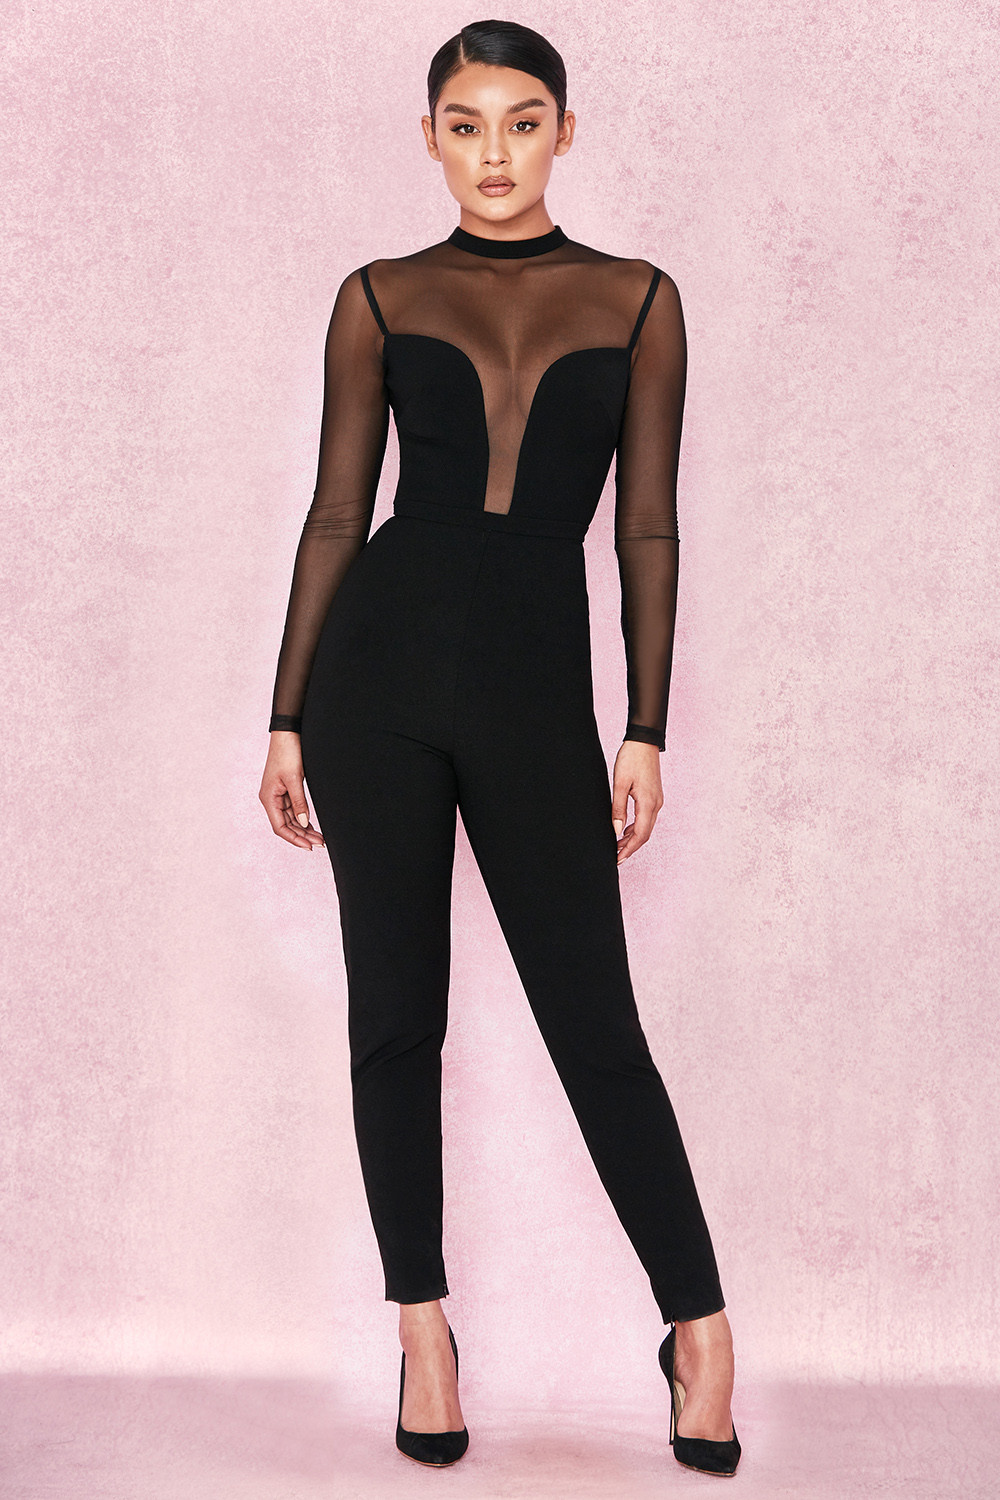 Jumpsuit by House of CB